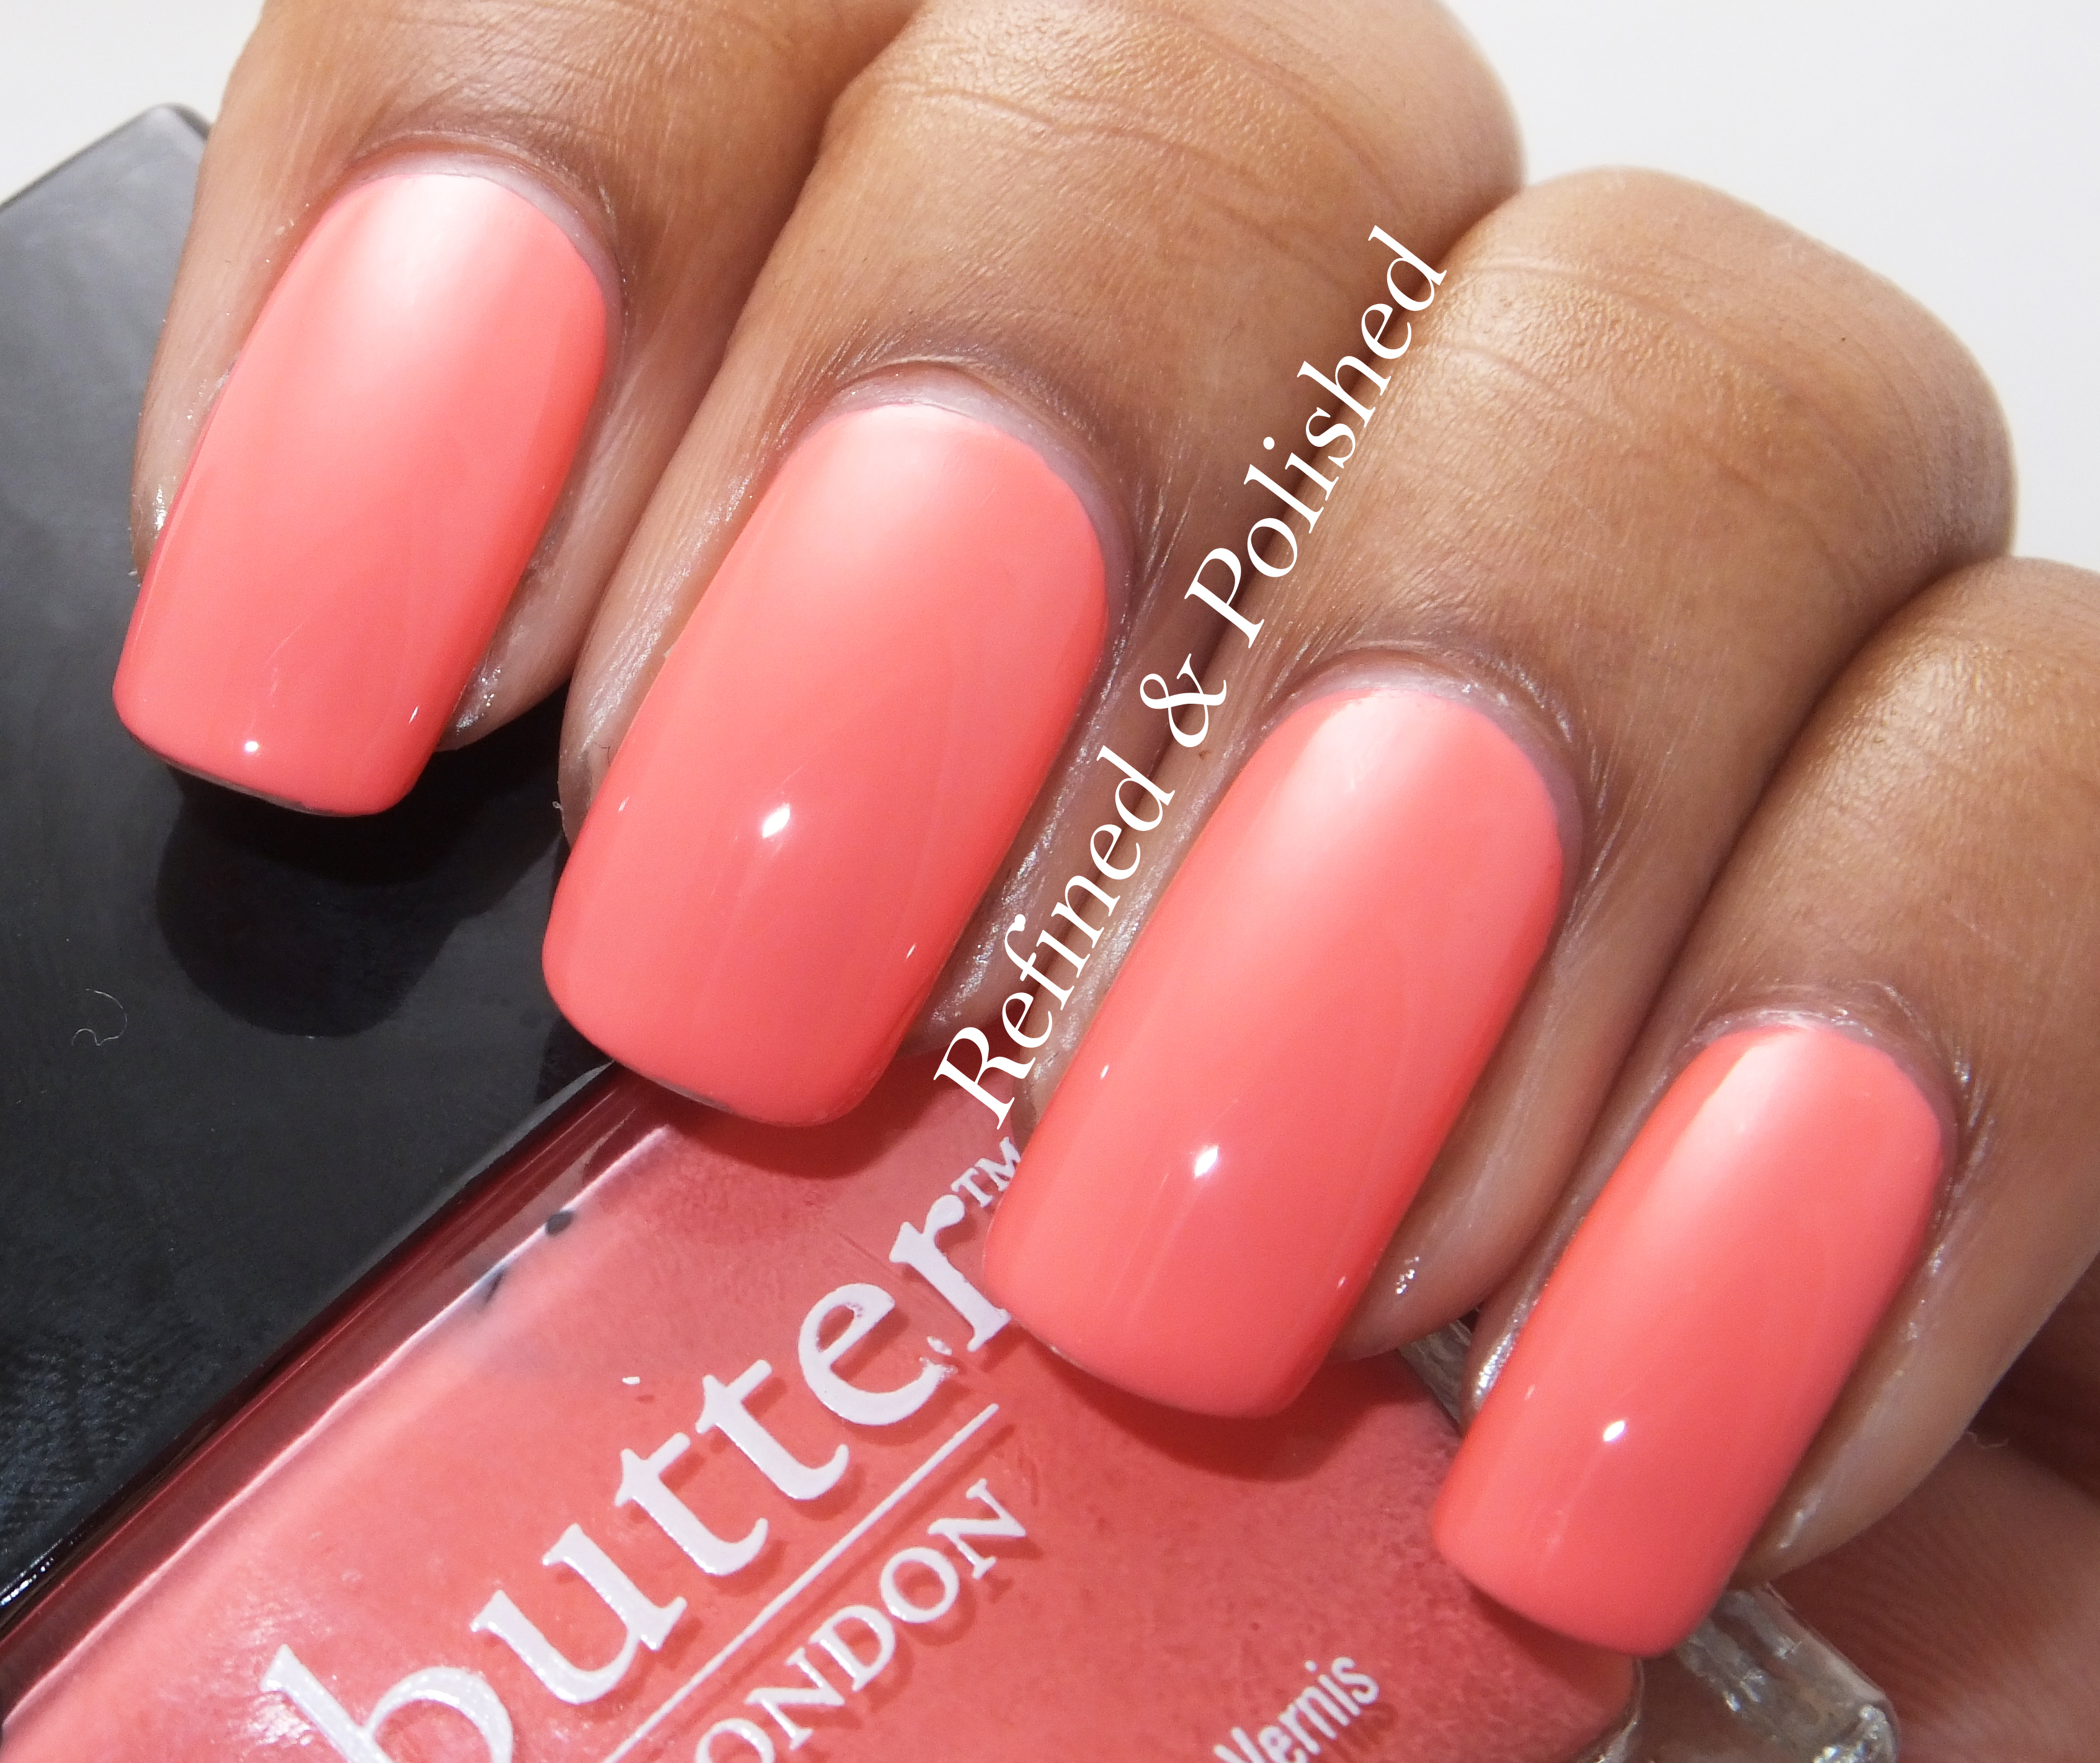 Reader's Choice Monday - Butter LONDON Trout Pout - Refined and Polished